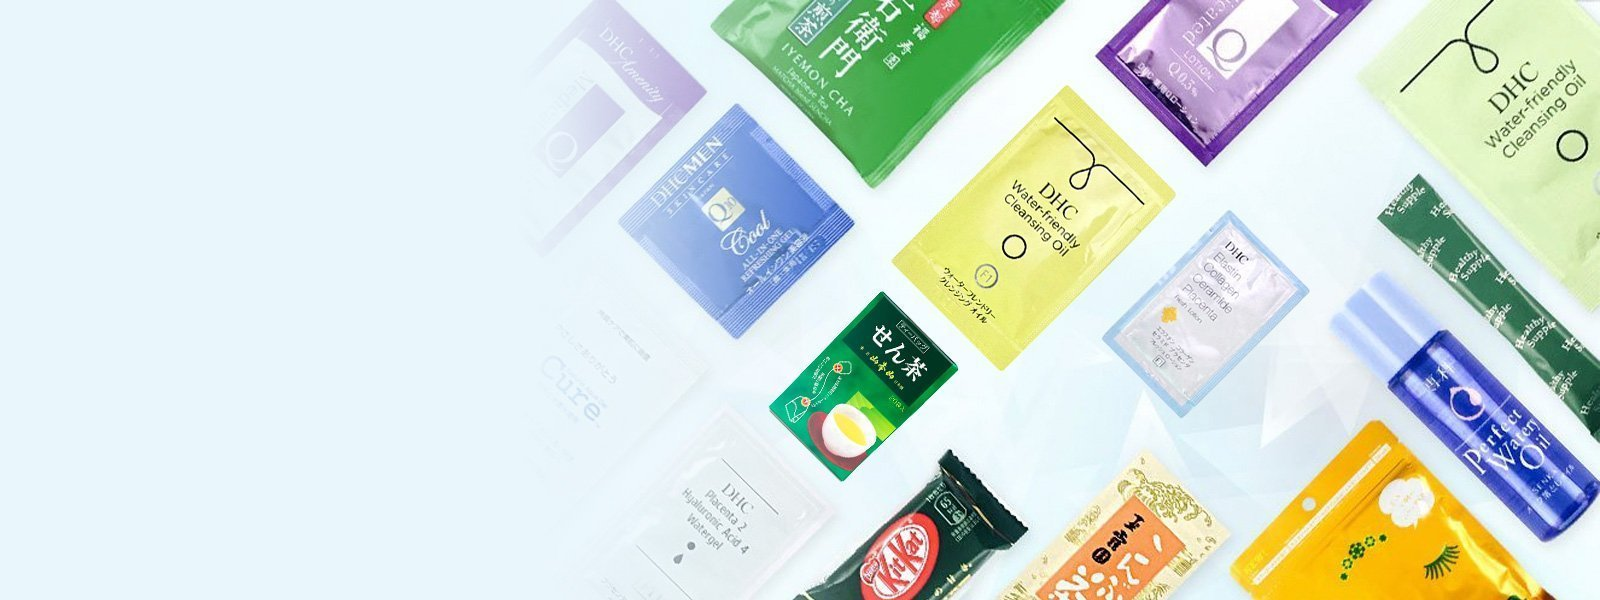 Free Product Samples from Japan with Love